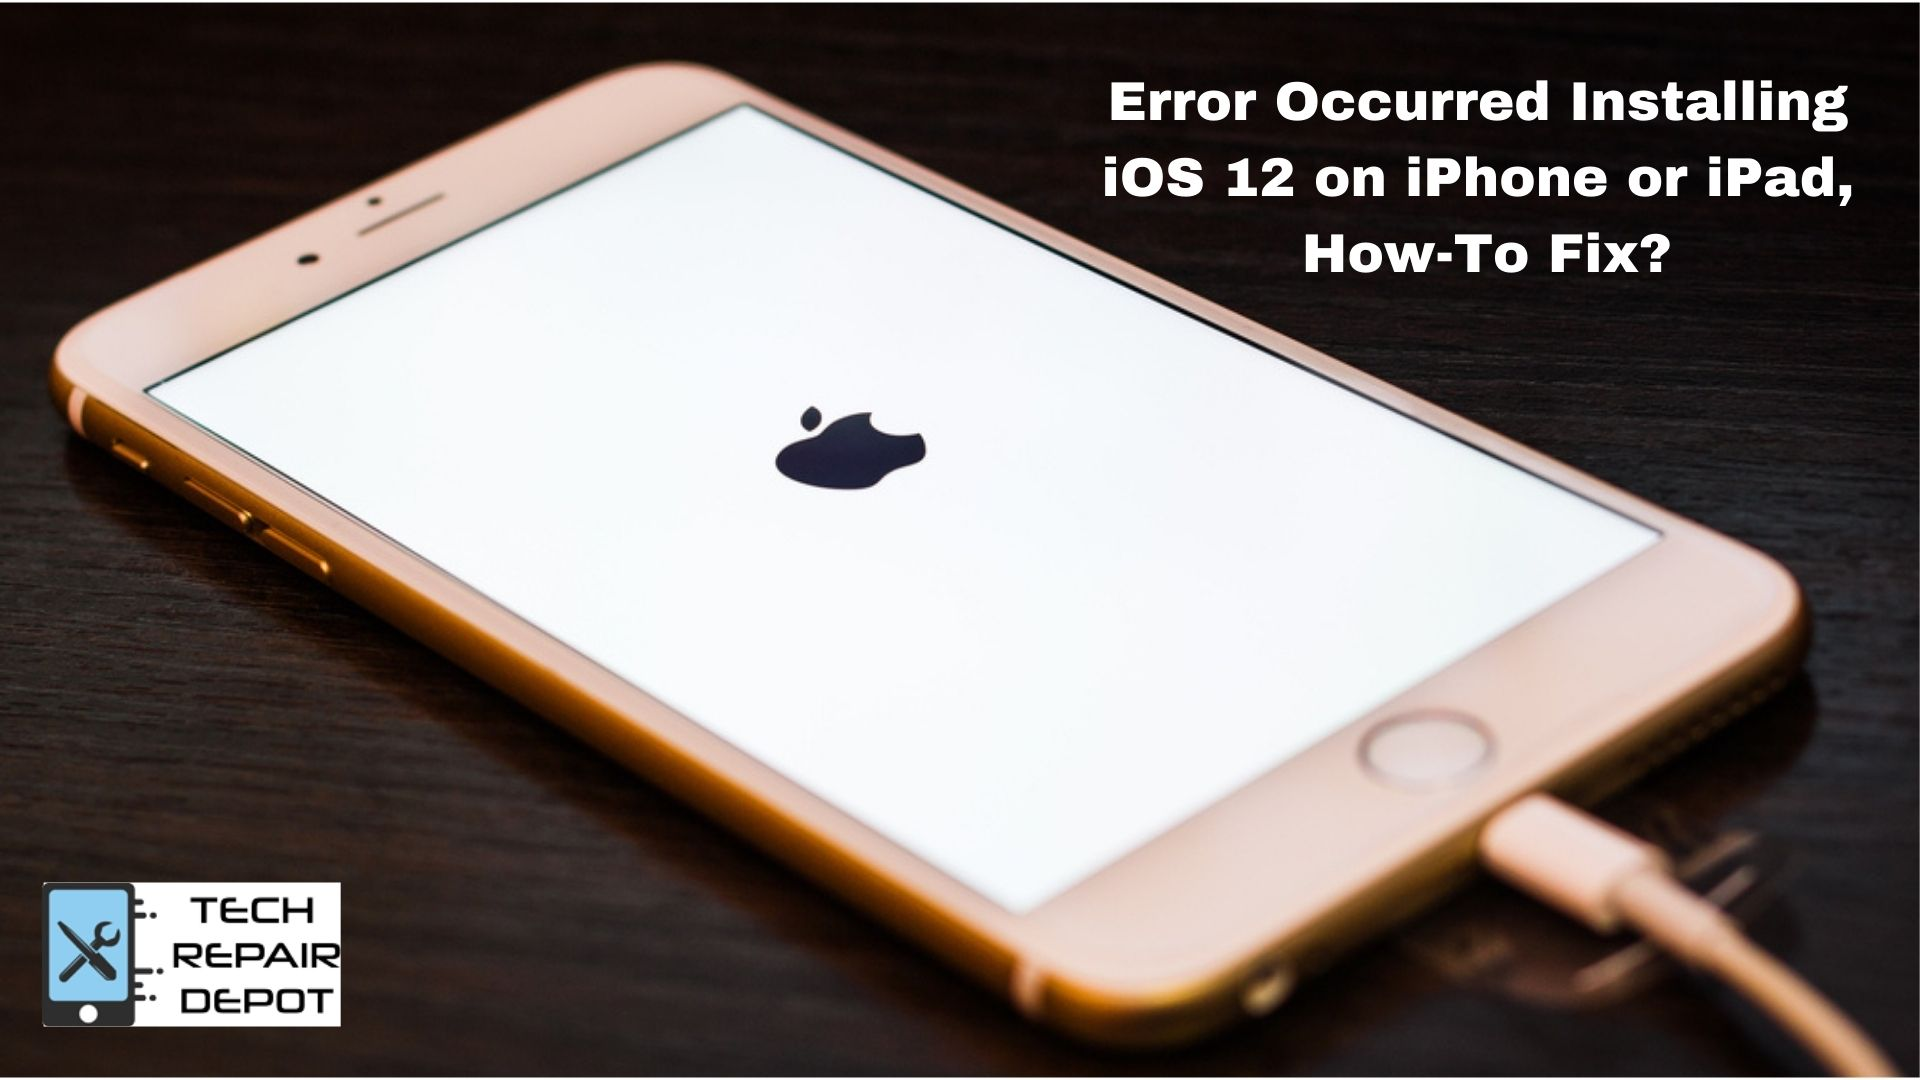 Error Occurred Installing iOS 12 on iPhone or iPad, How-To Fix